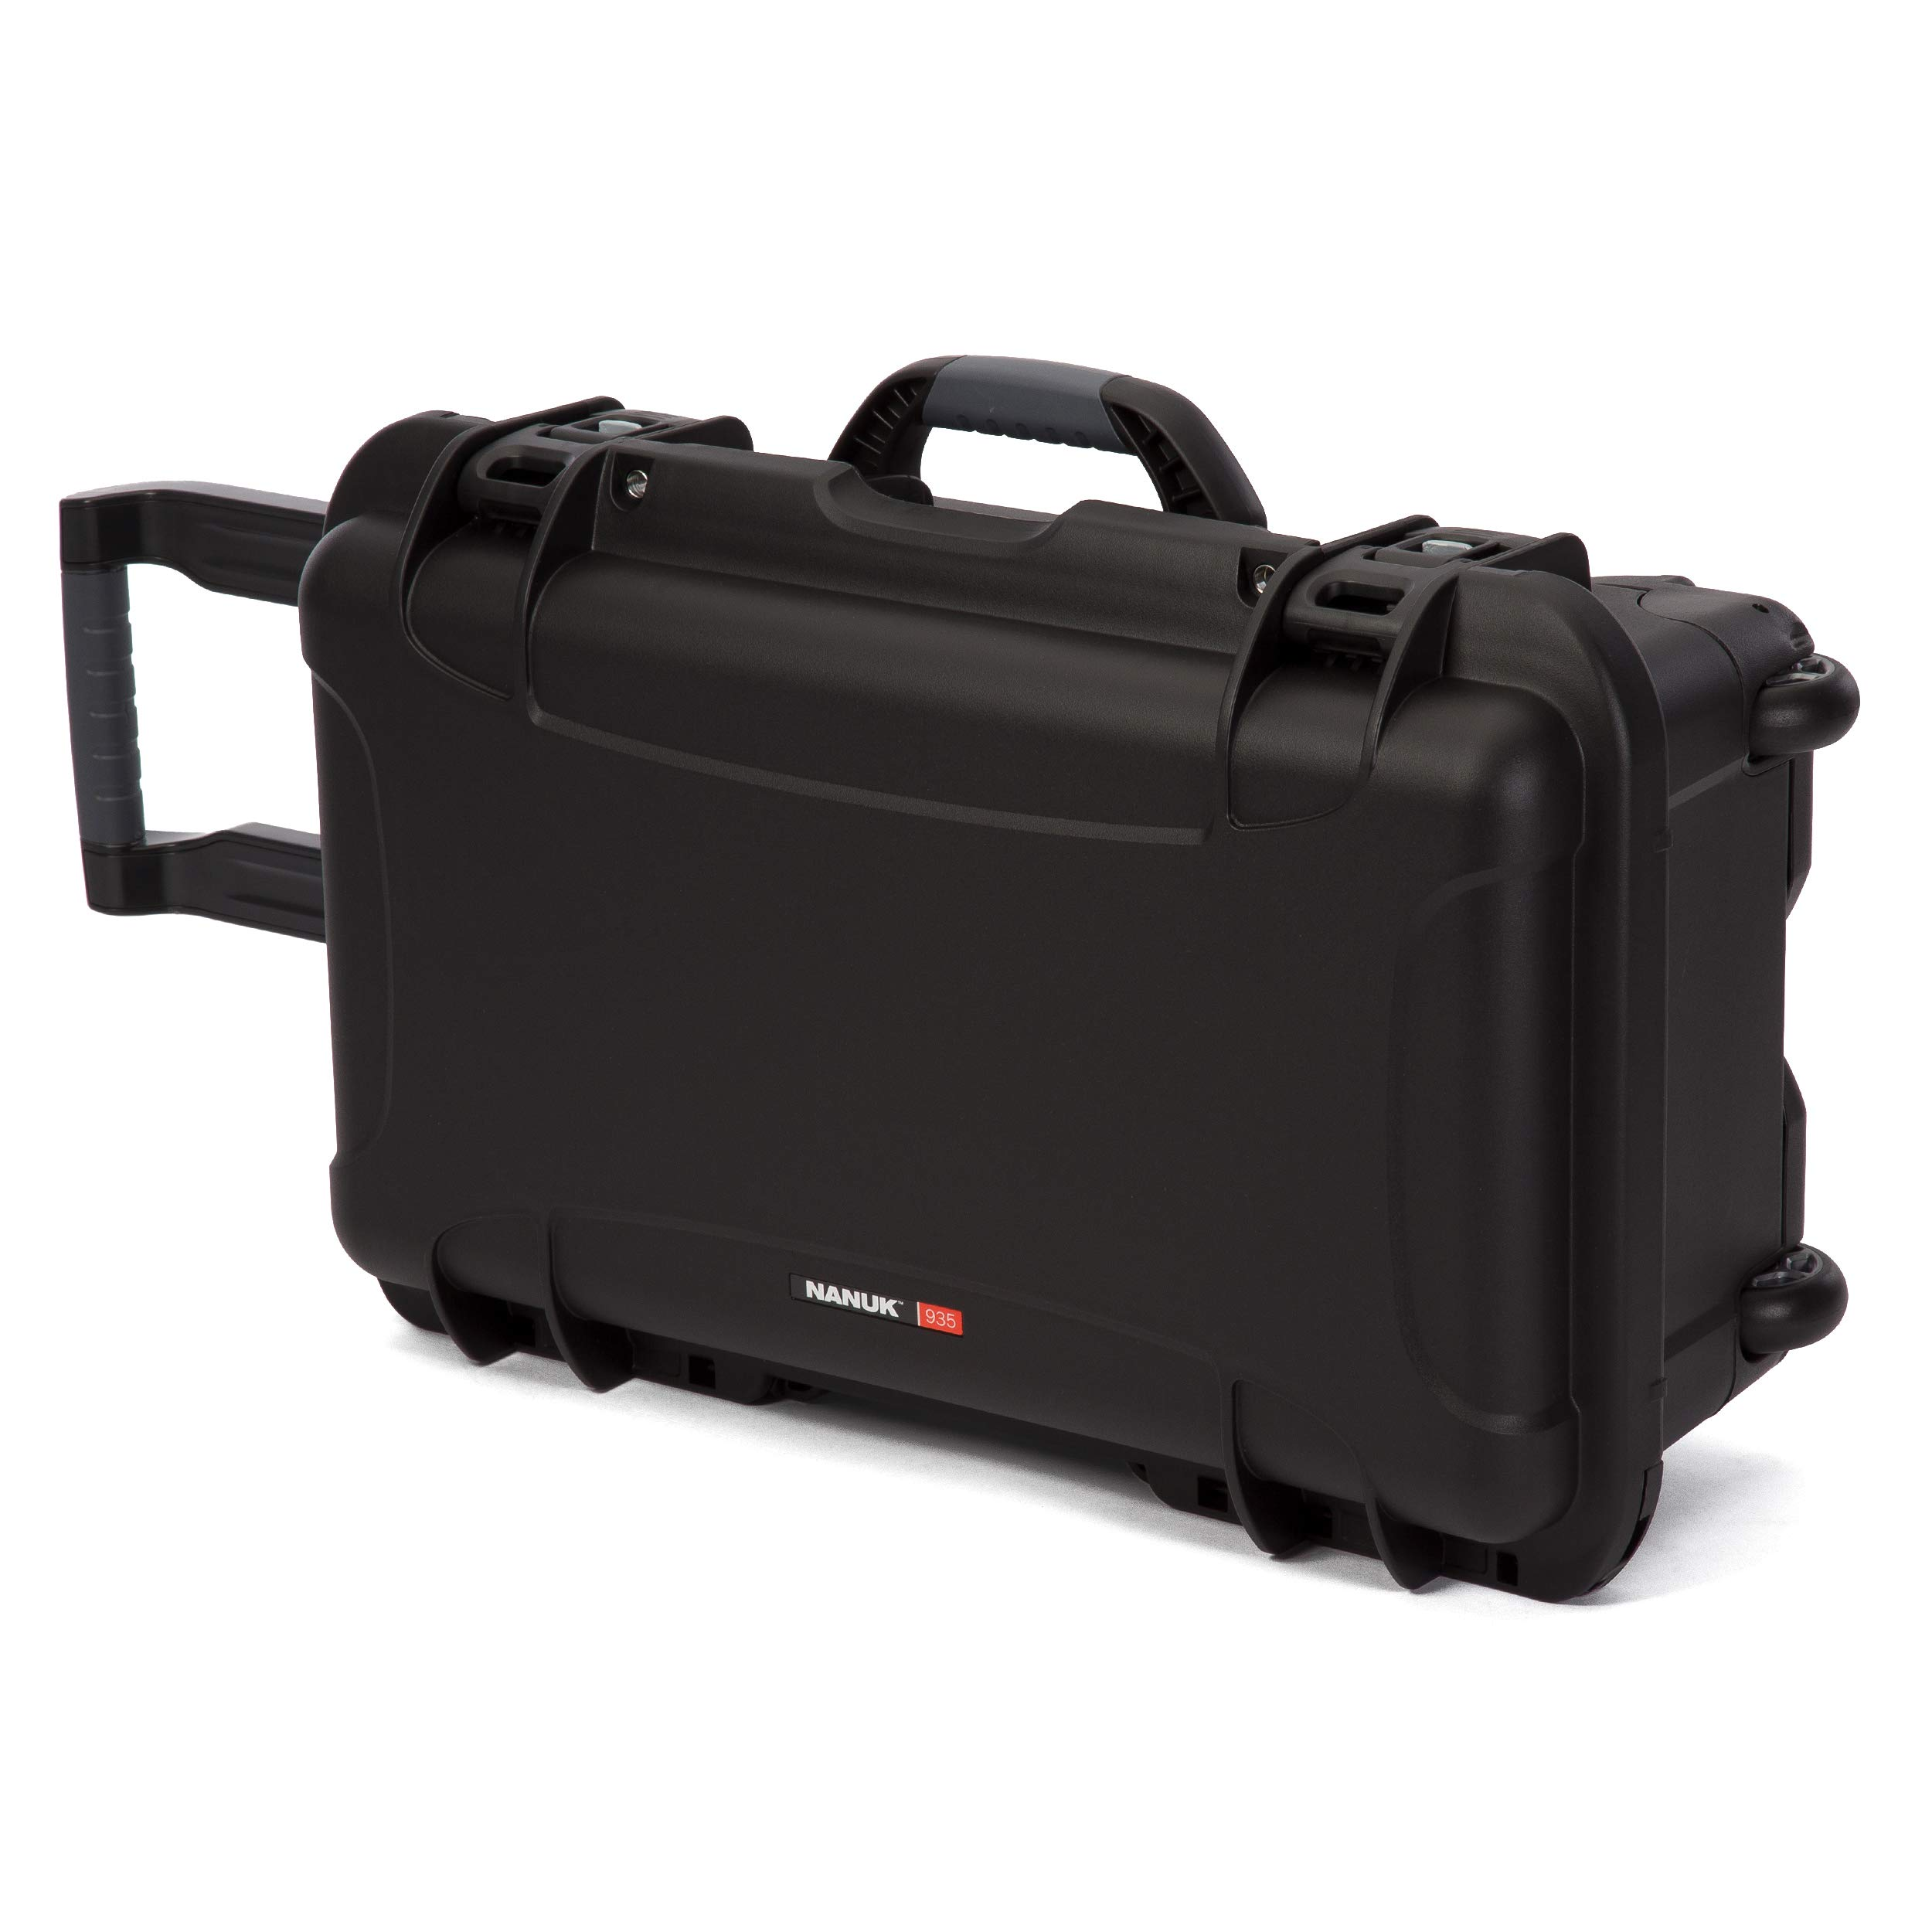 Nanuk 935 Waterproof Carry-On Hard Case with Wheels and Foam Insert - Black by Nanuk (Image #2)